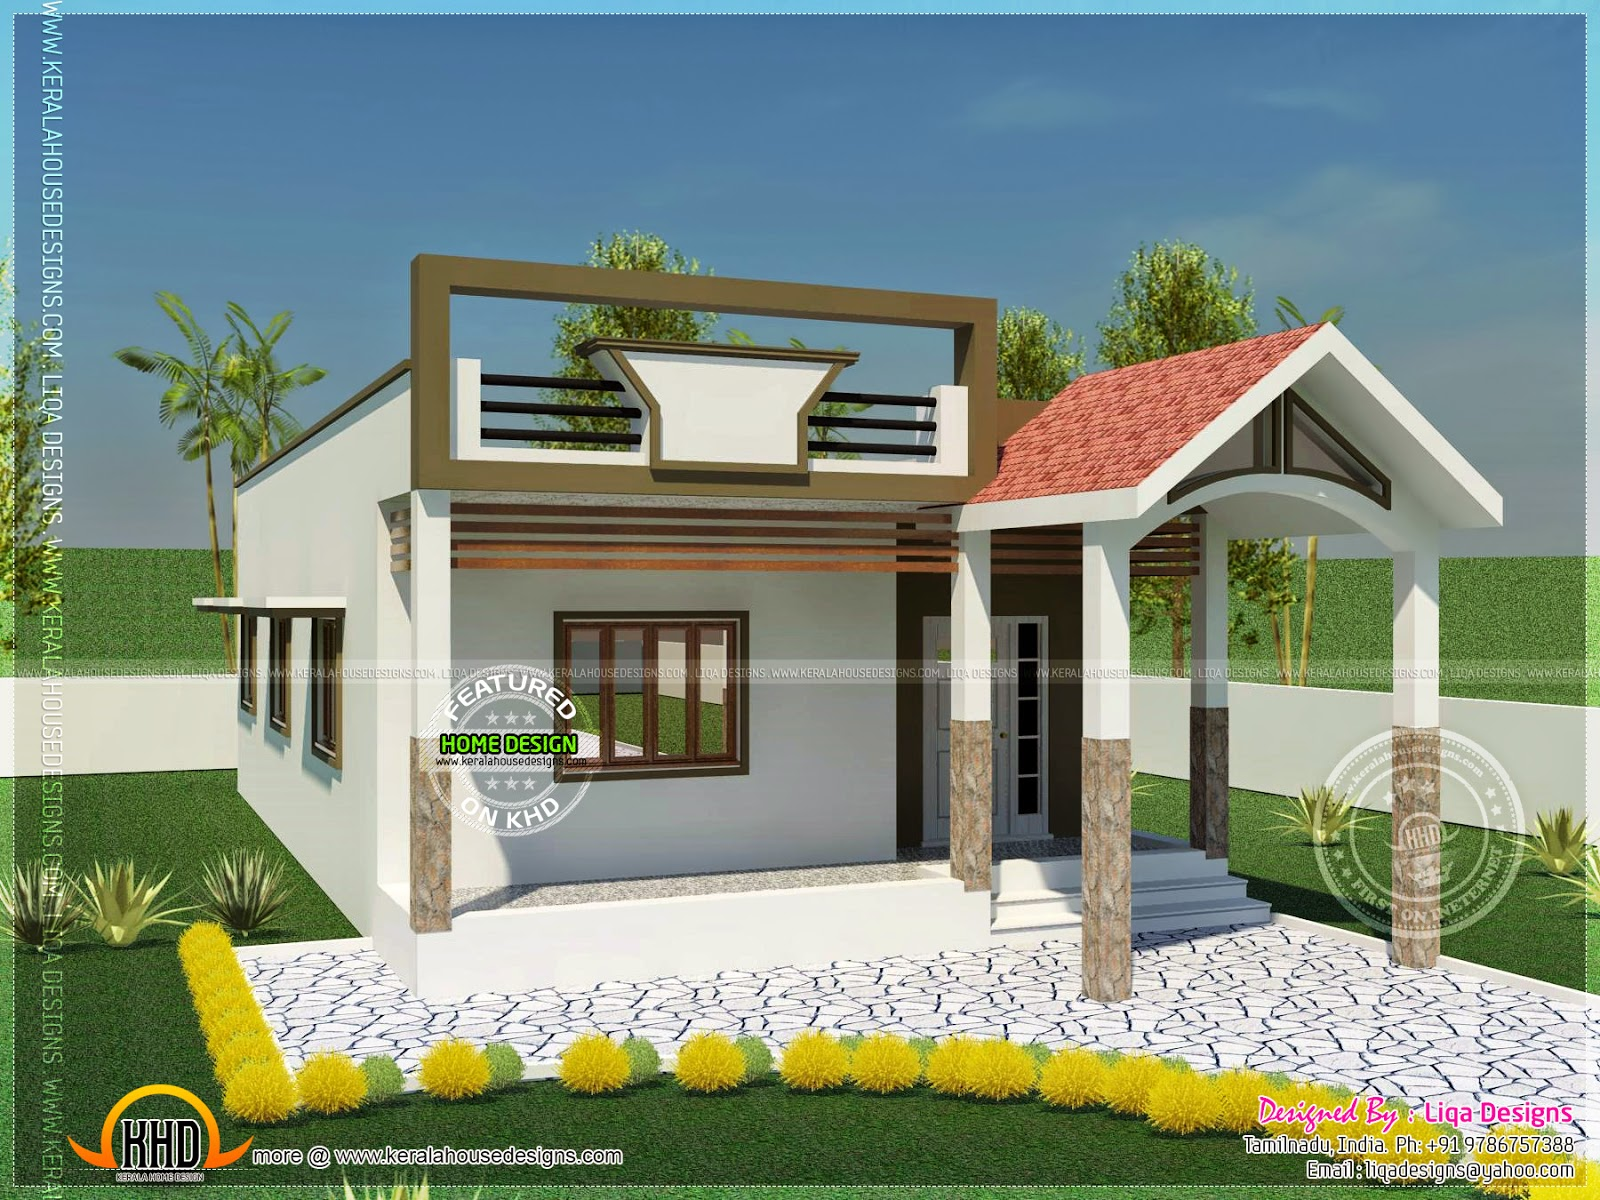 740 square feet single storied house kerala home design for Single floor house